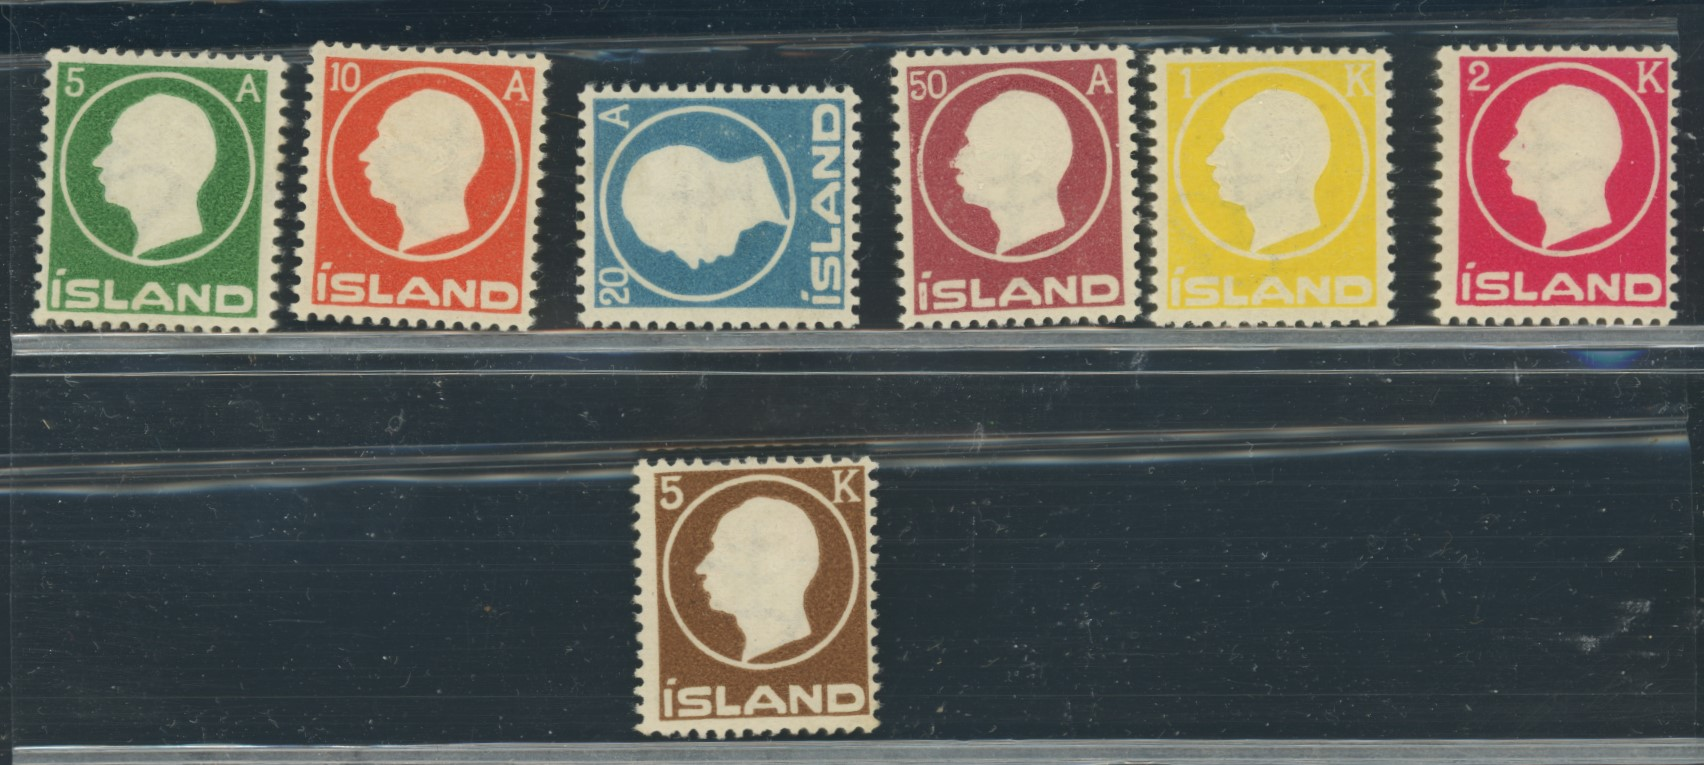 Lot 2080 - Island AFA 1-82 (AFA)  -  Skanfil Auksjoner AS  Public auction 211